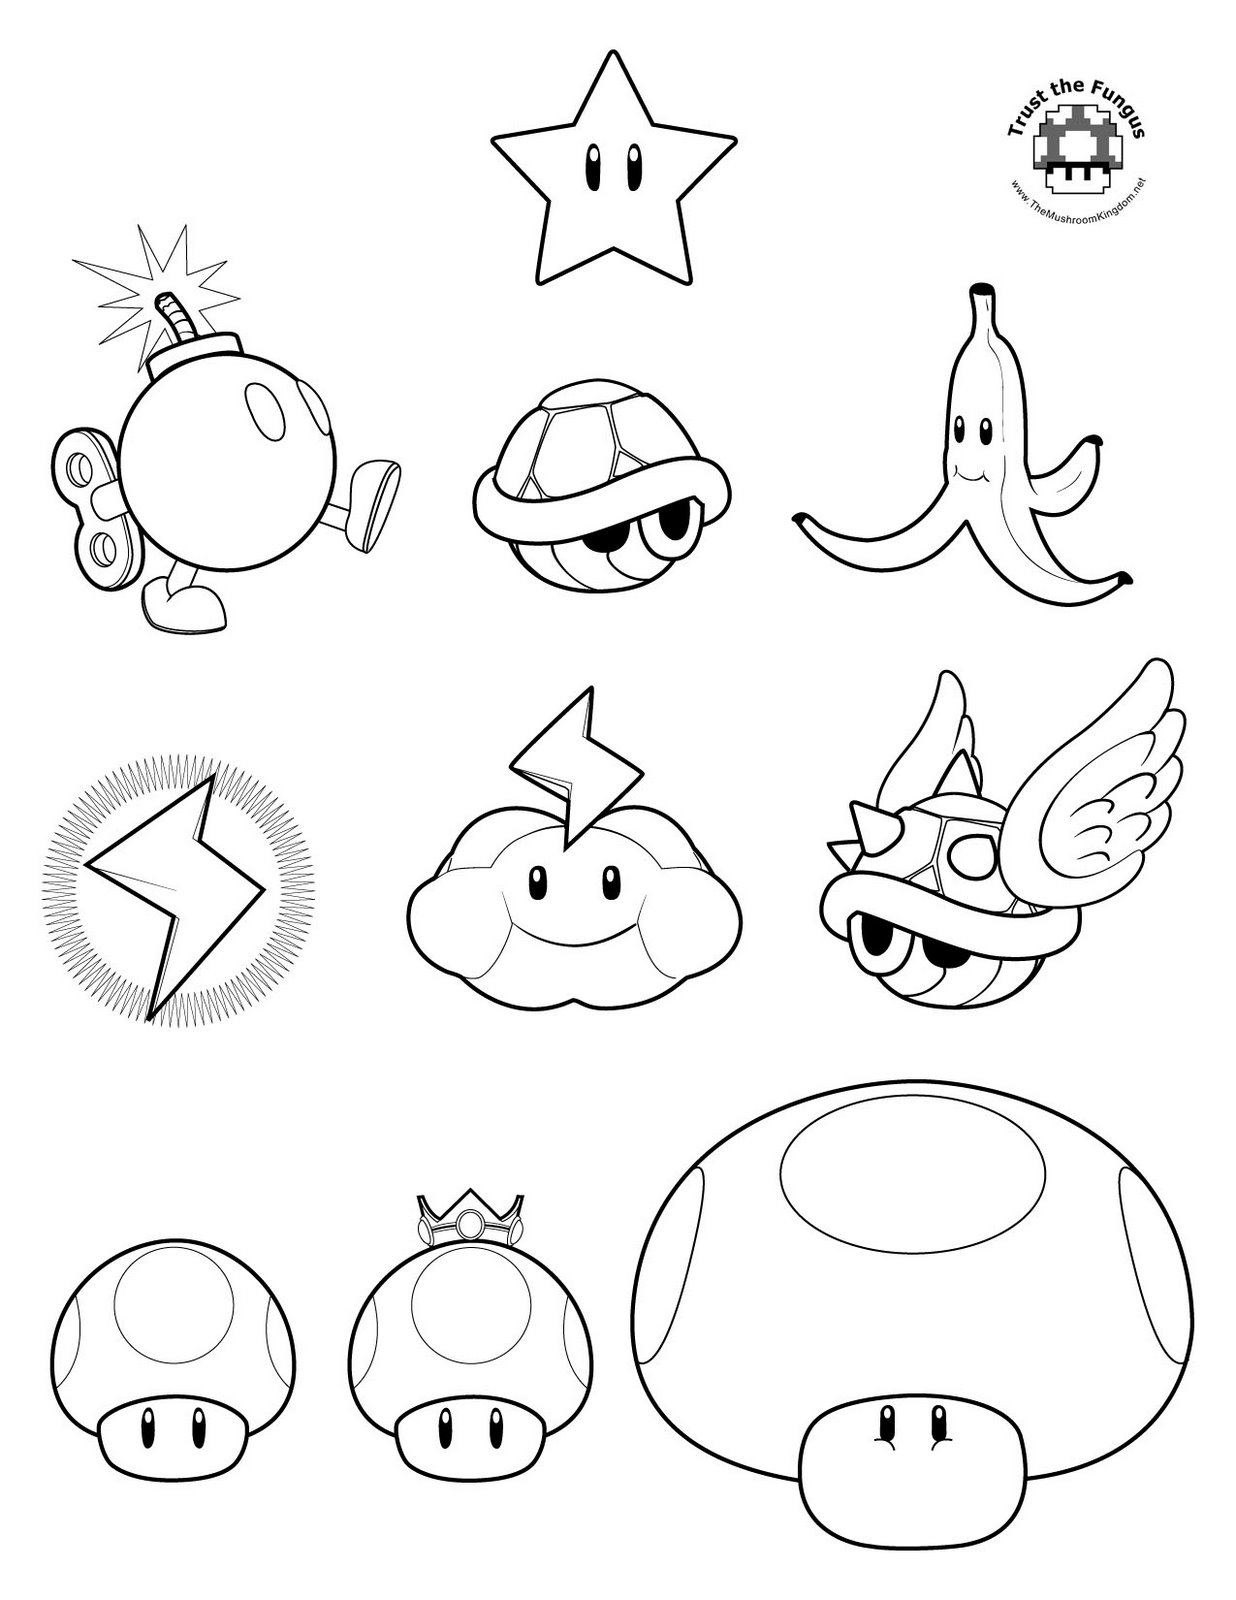 Mario Kart Coloring Pages Super Mario Coloring Pages 12  Coloring Kids